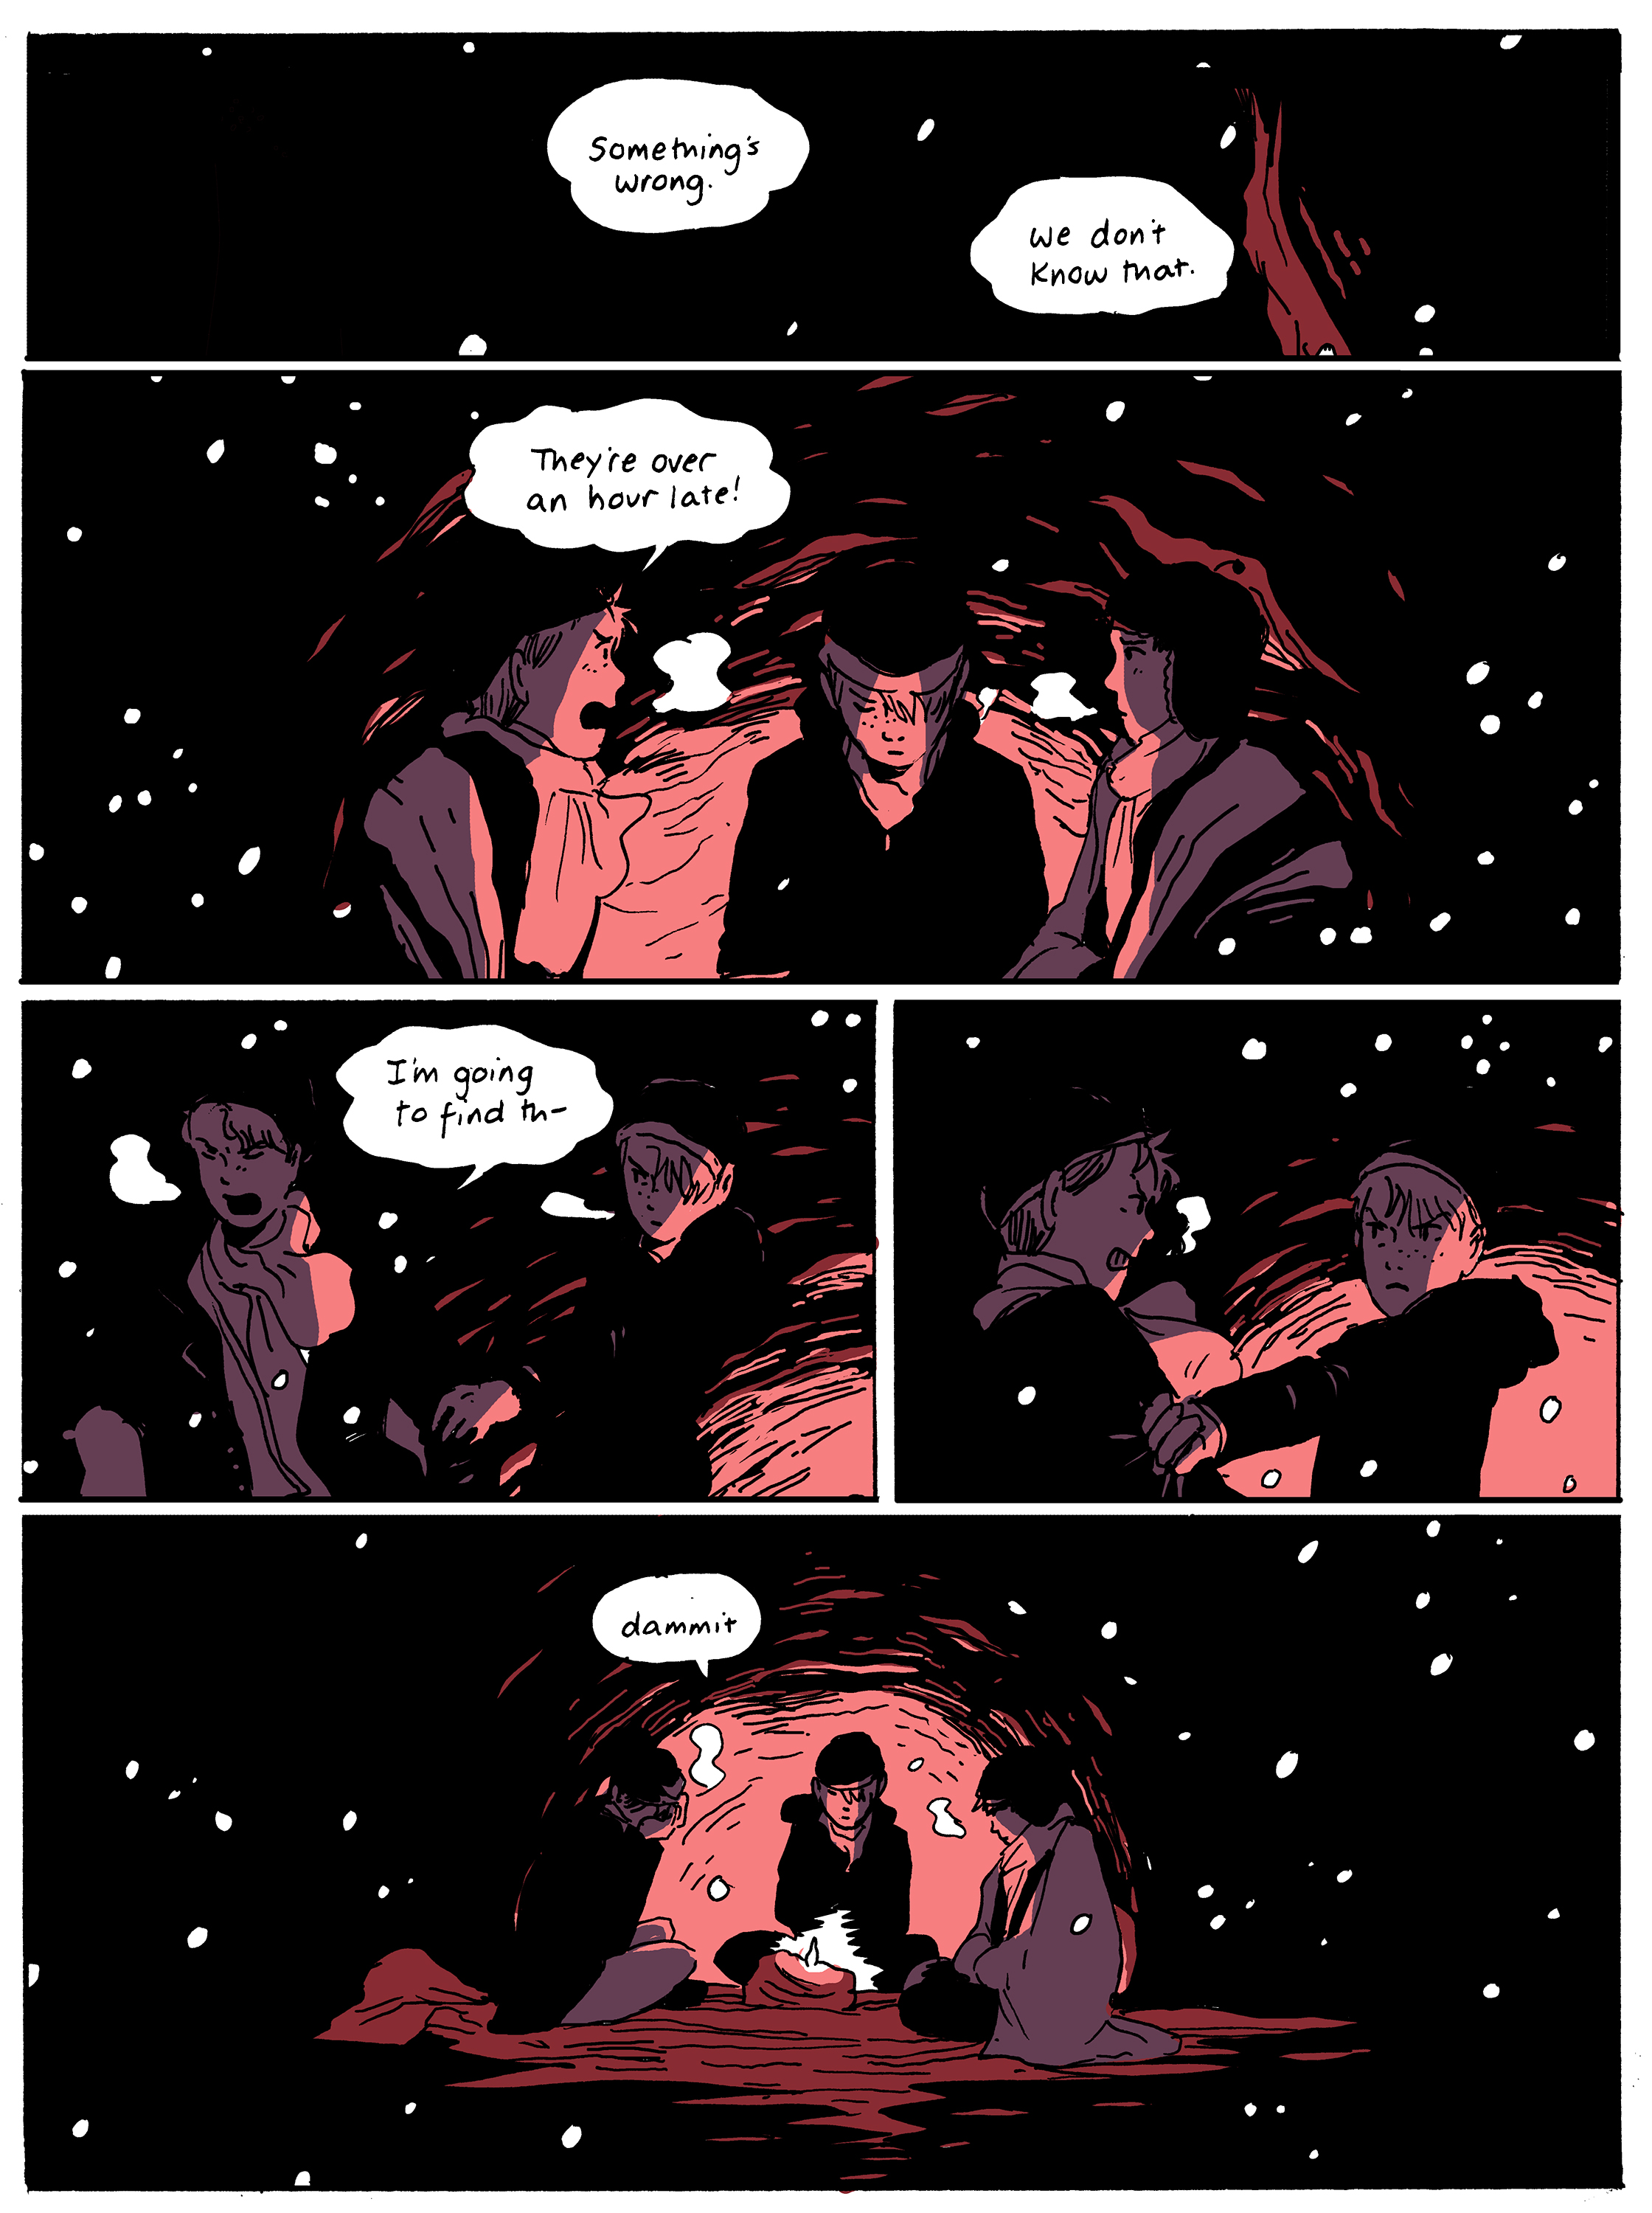 chapter15_page18.jpg